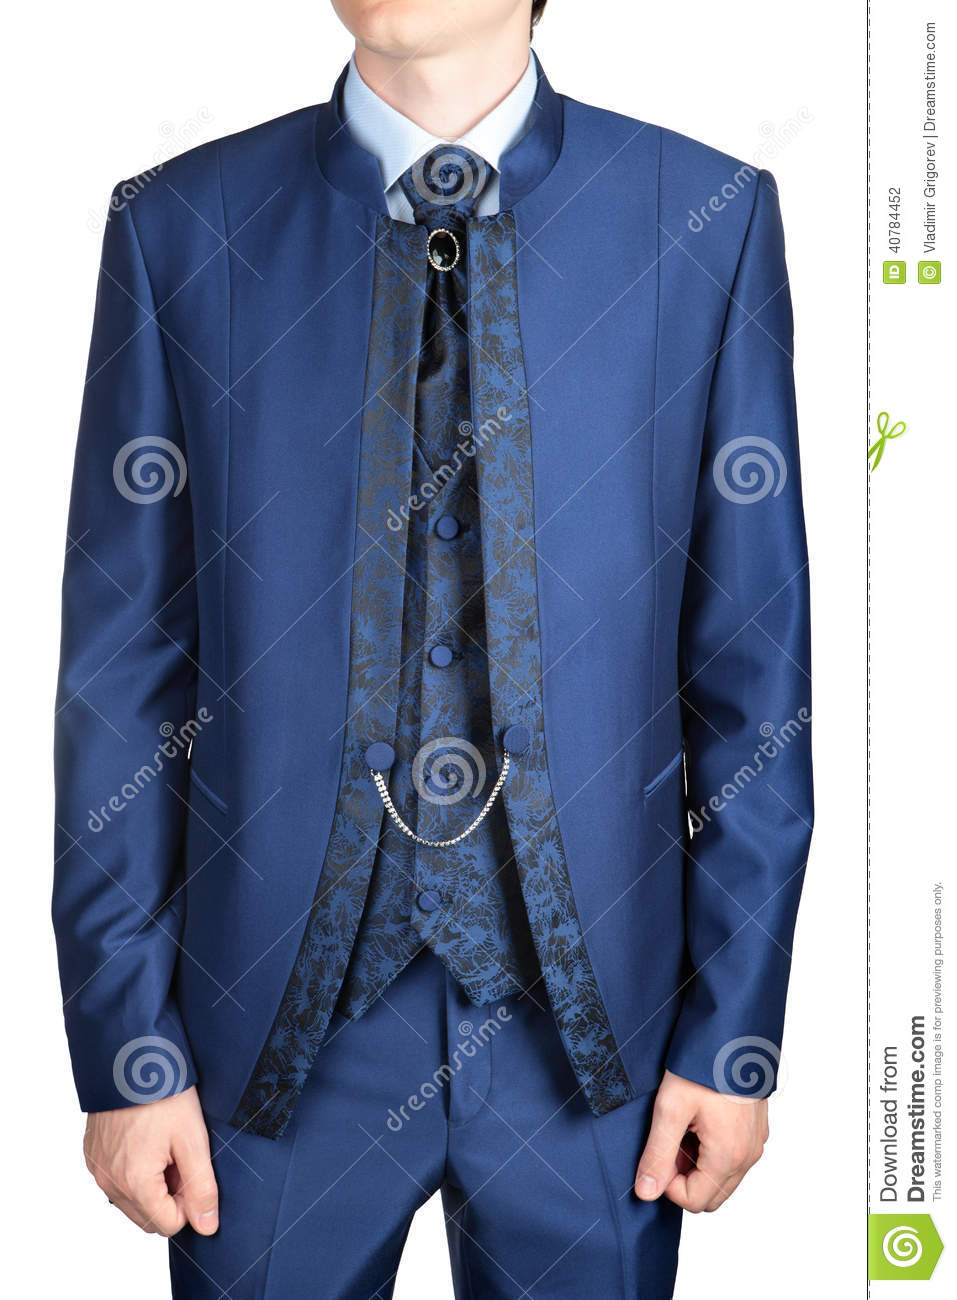 Blue Men Wedding Suit Or Evening Dress, Isolated On White Stock ...